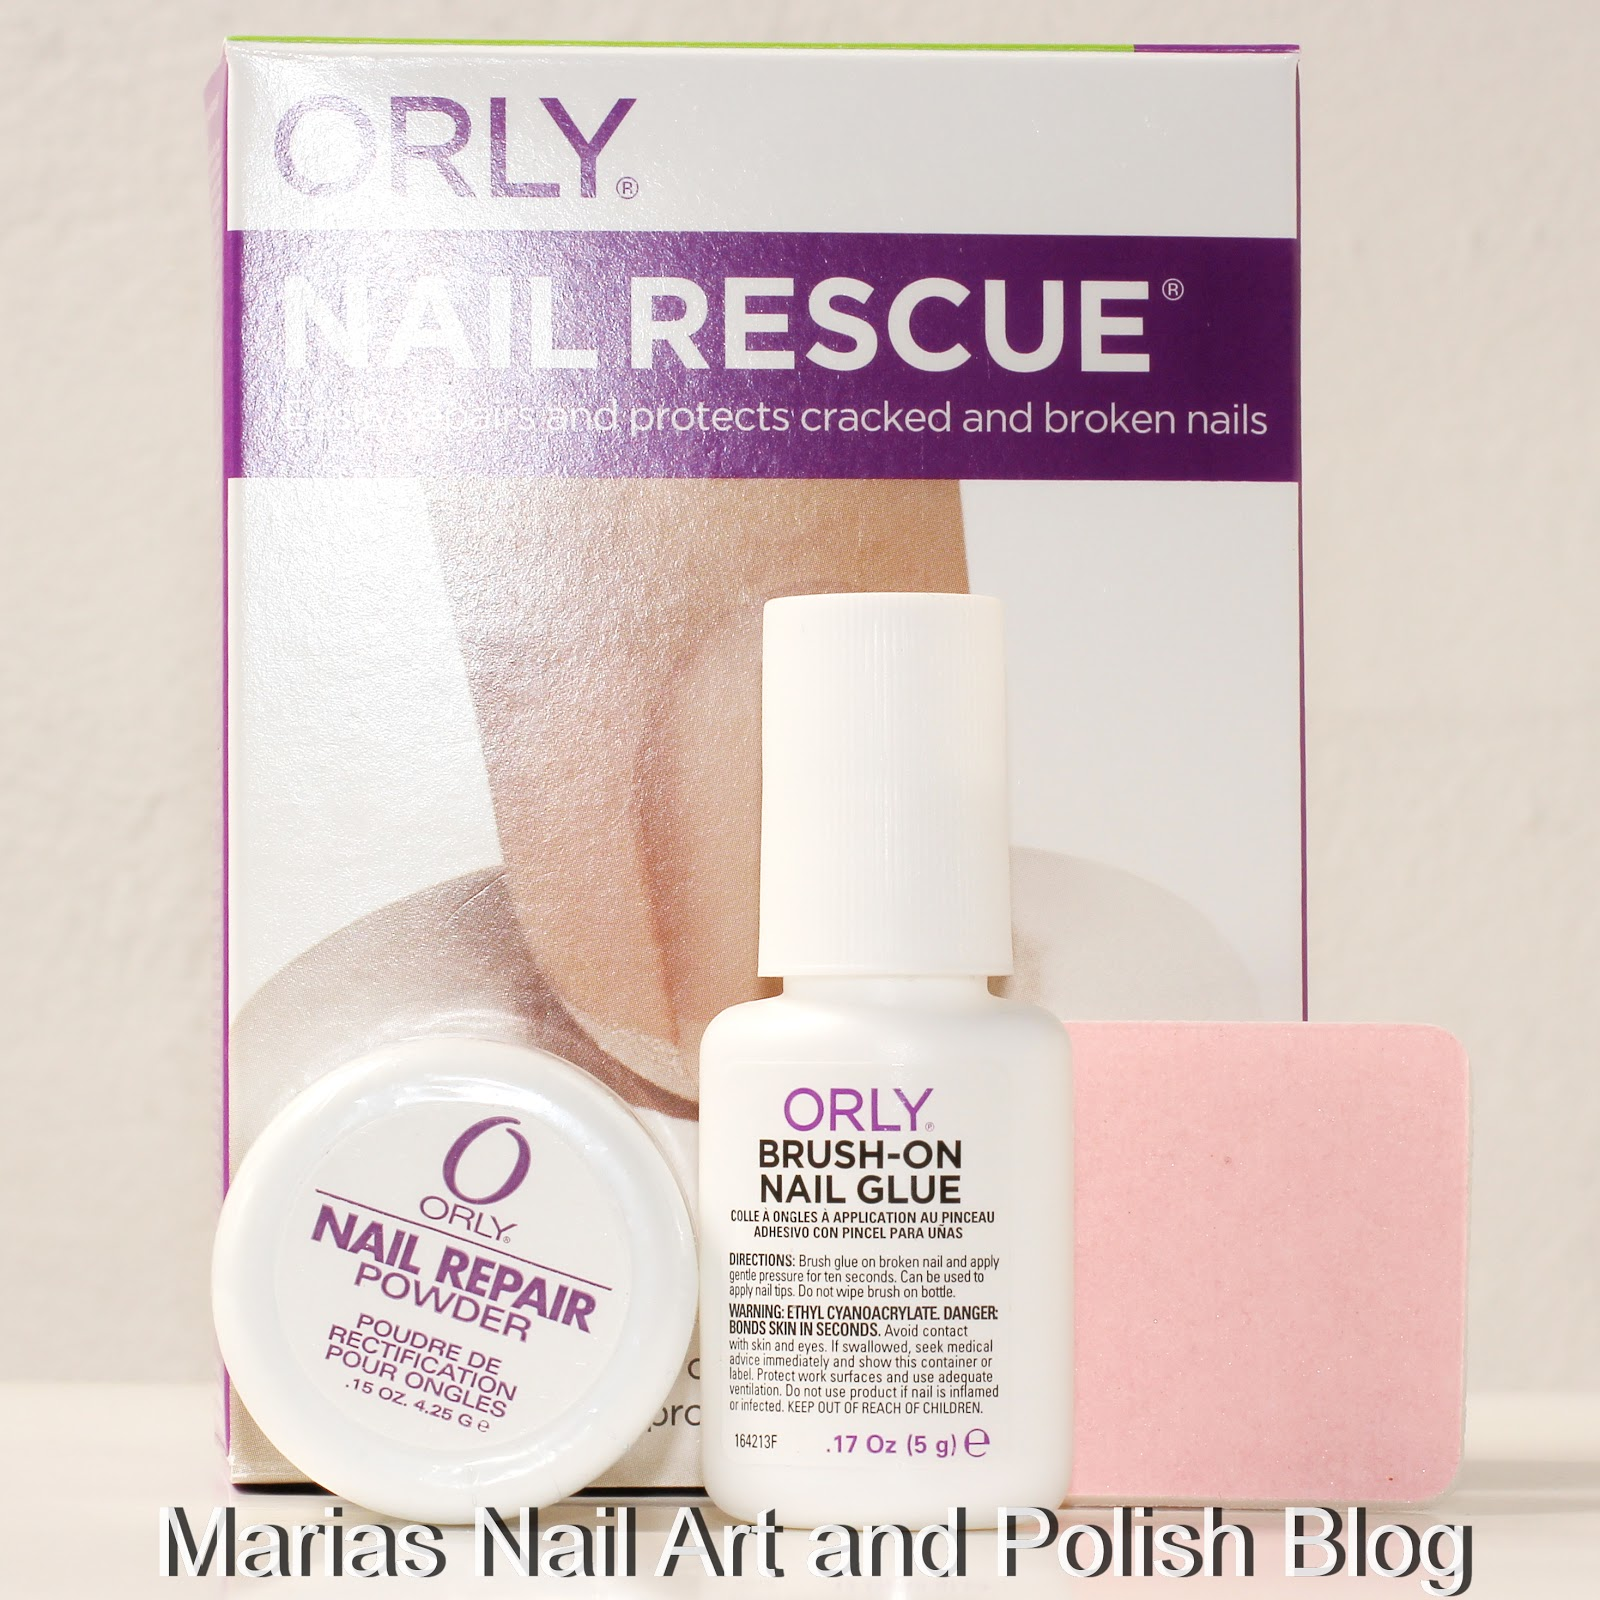 Marias Nail Art and Polish Blog: DIY + Tips & tricks